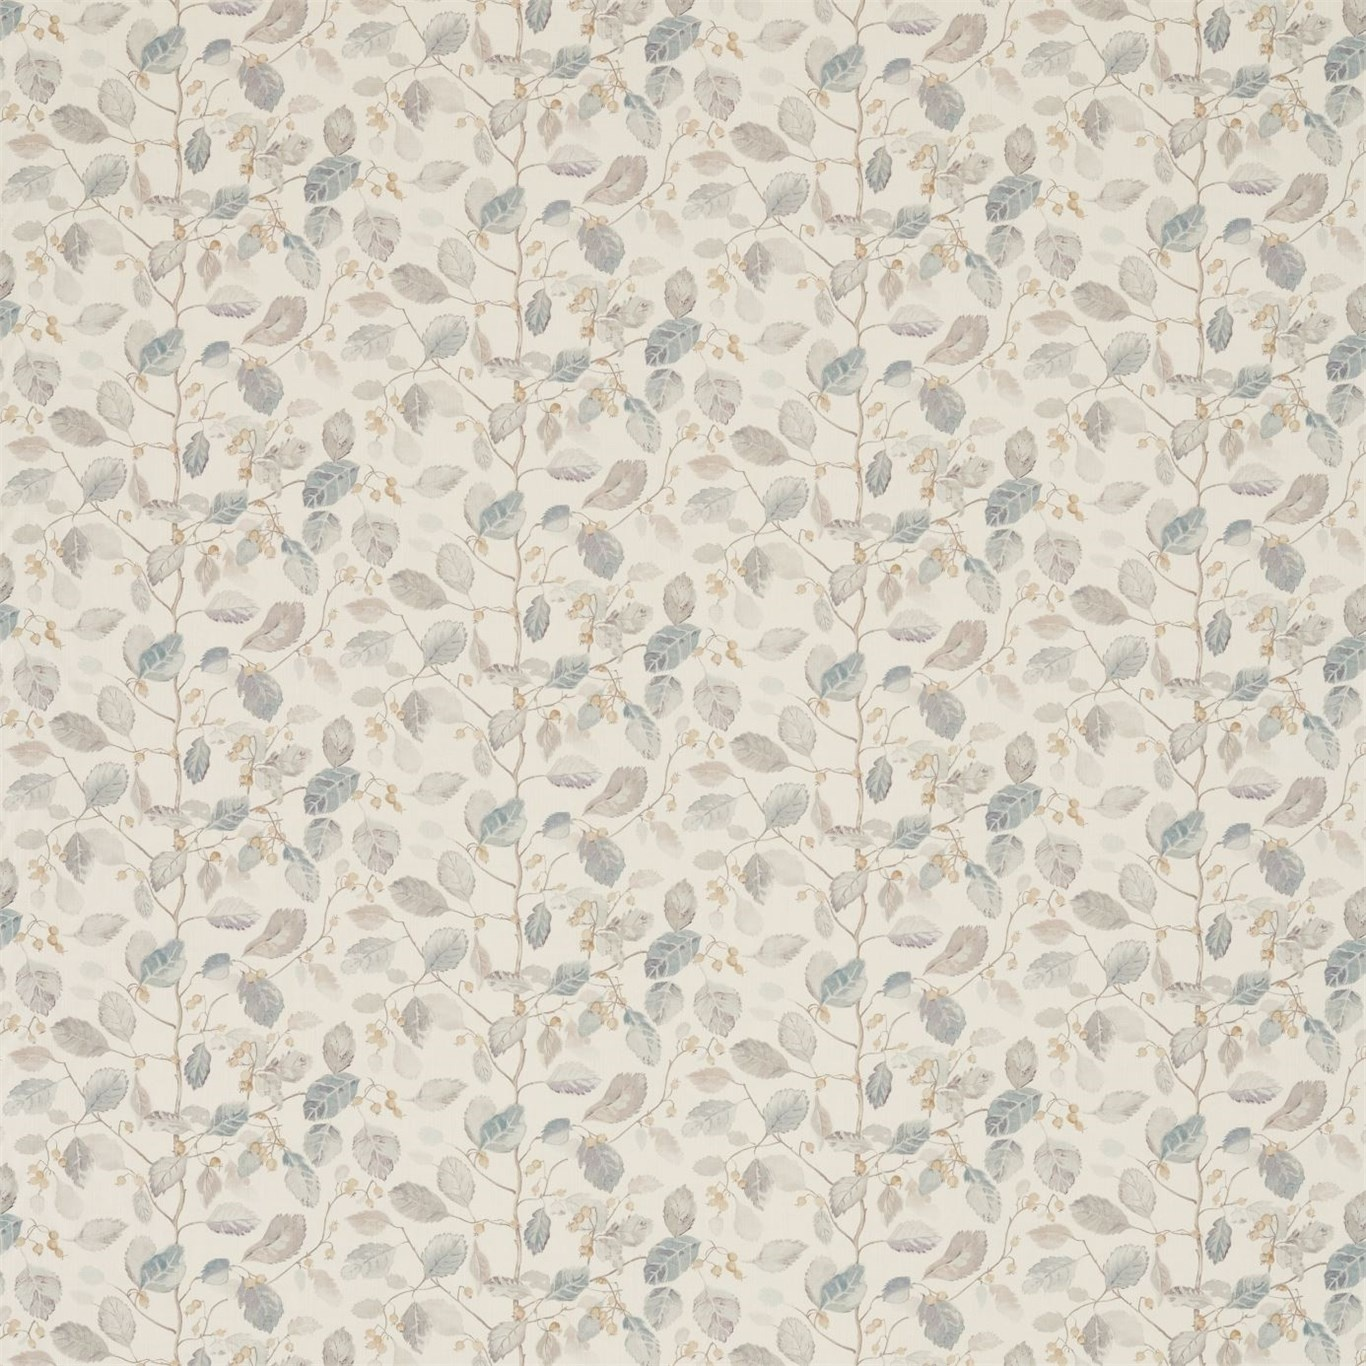 Image of Sanderson Woodland Berries Grey/Silver Fabric 225531